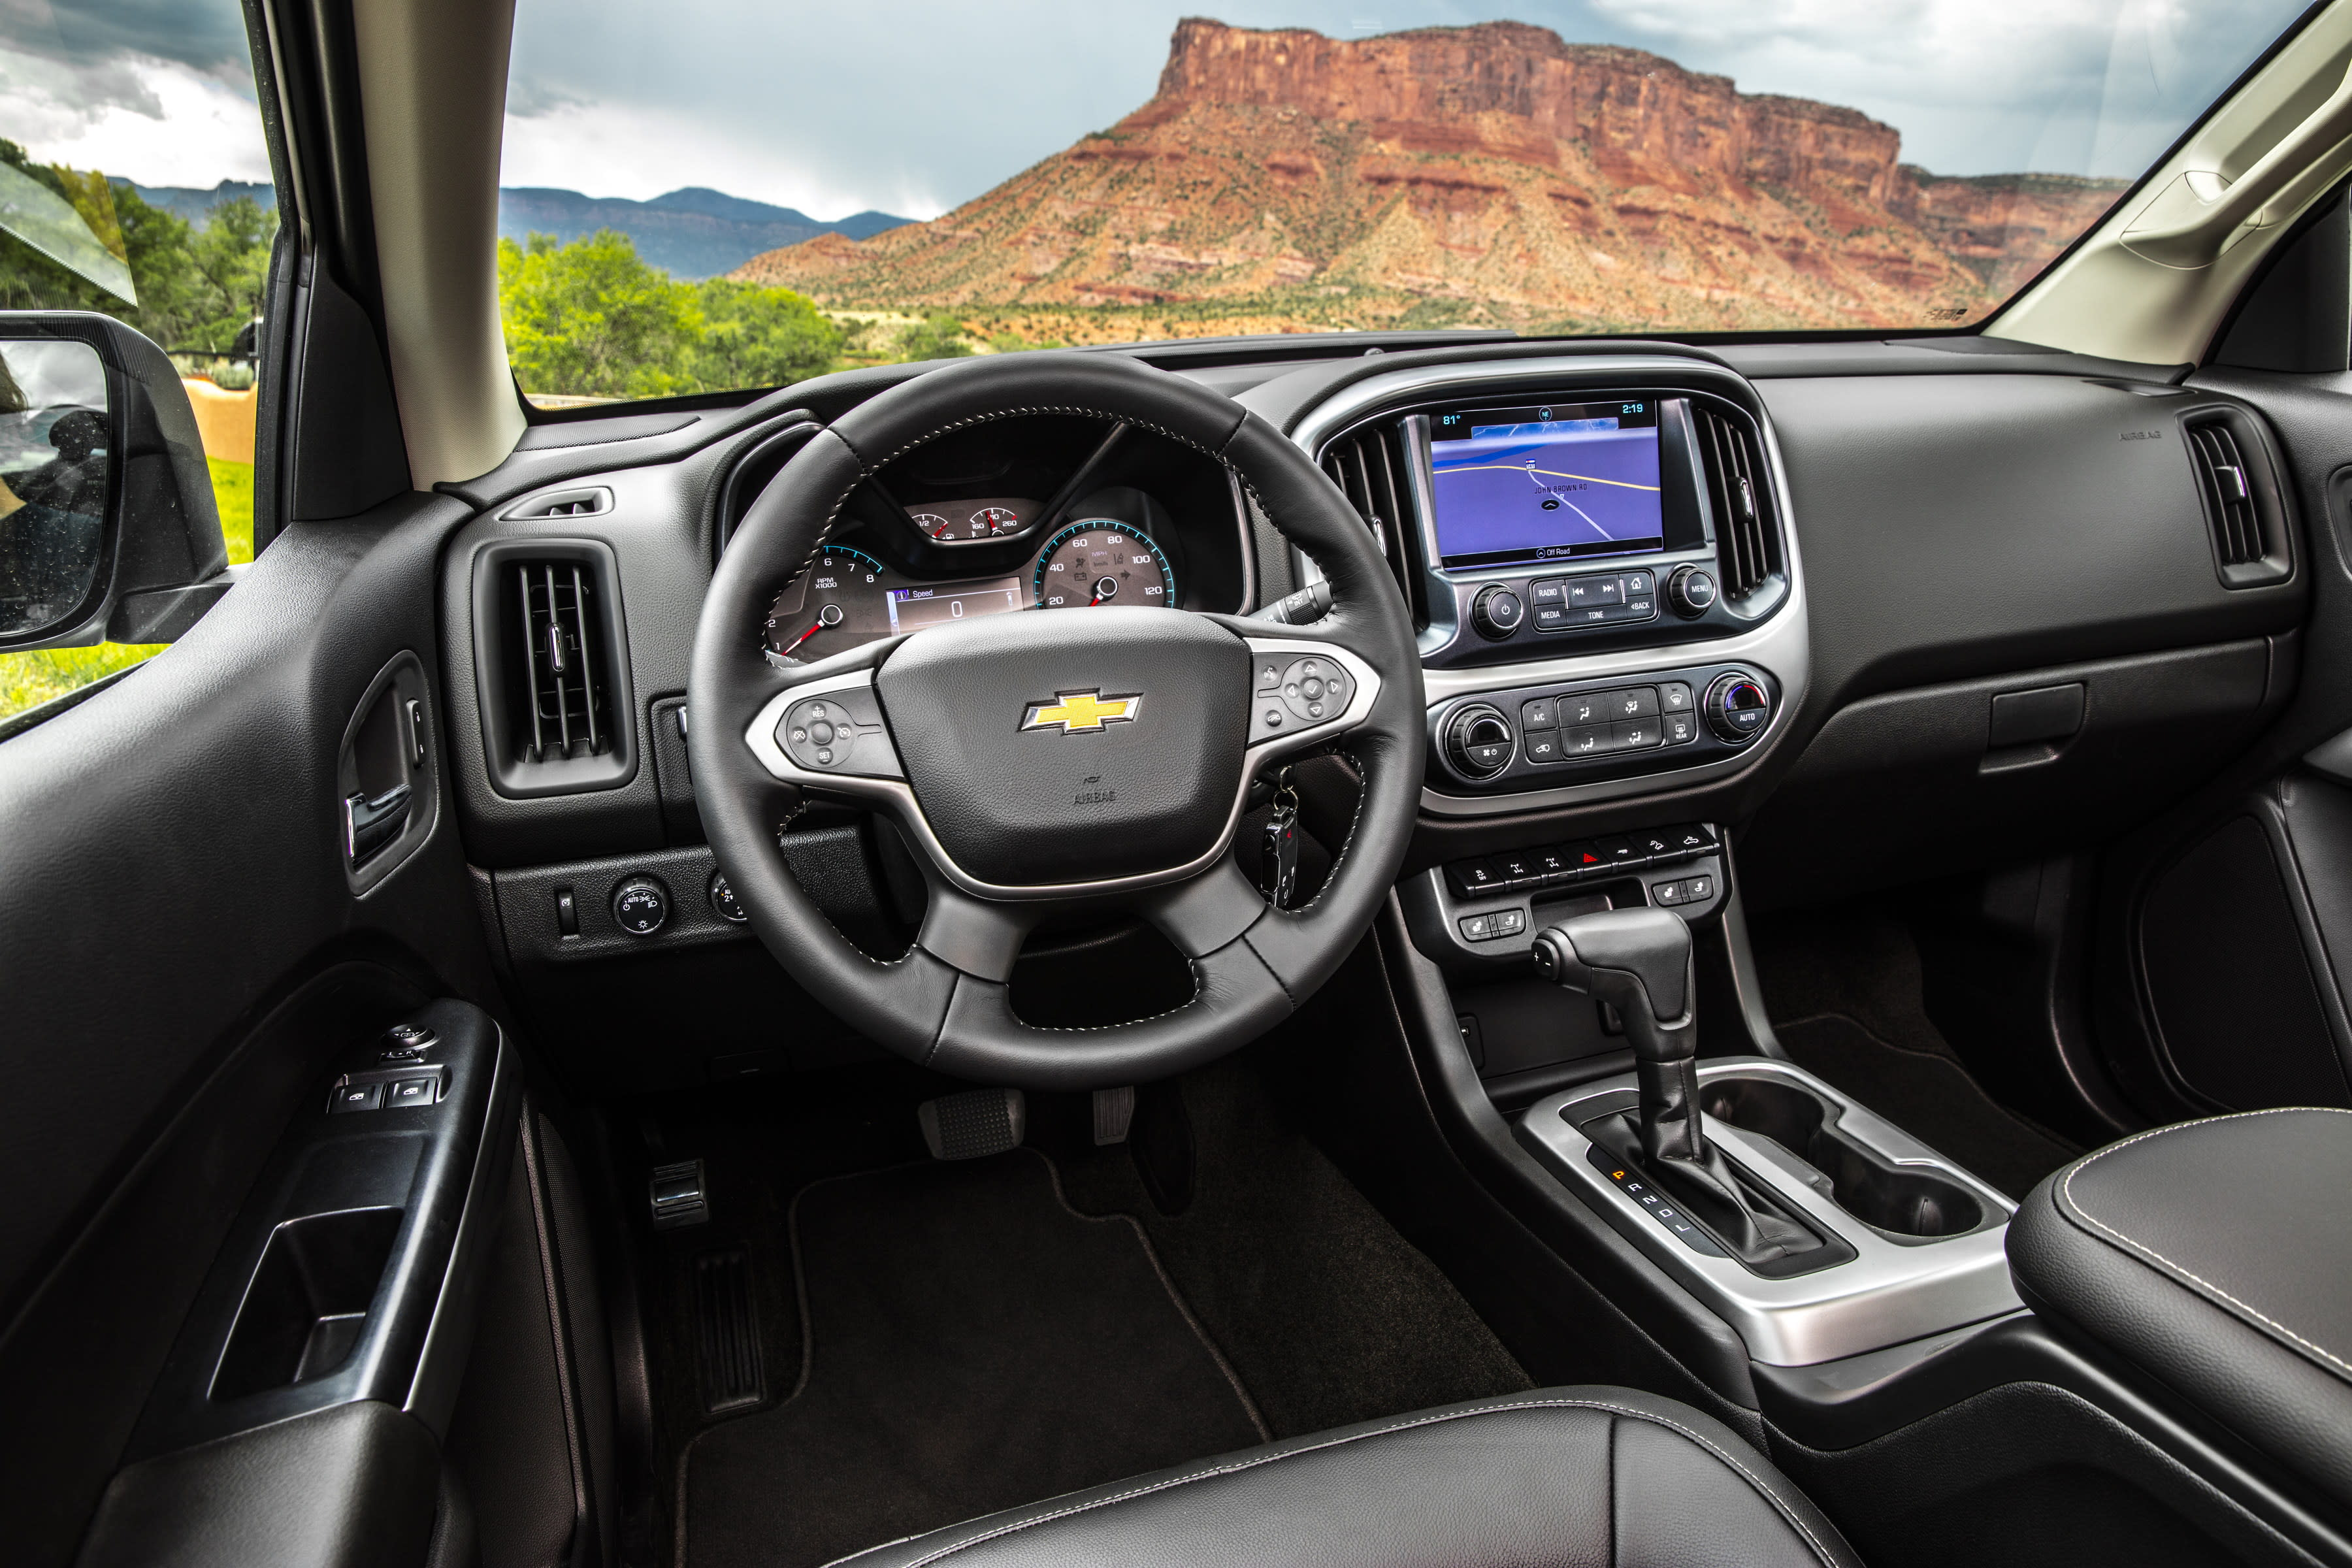 2017 Chevrolet Colorado ZR2 mid size pick up review Video